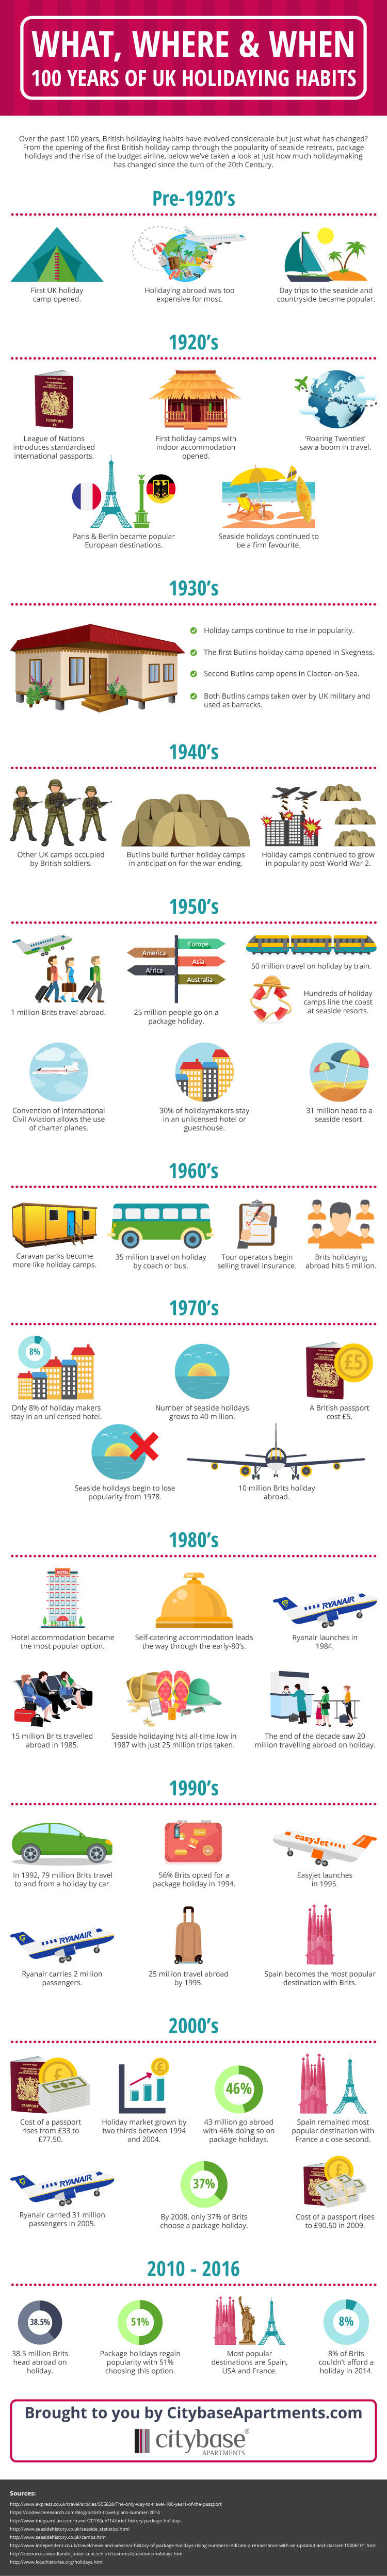 100-years-uk-holidaying-habits